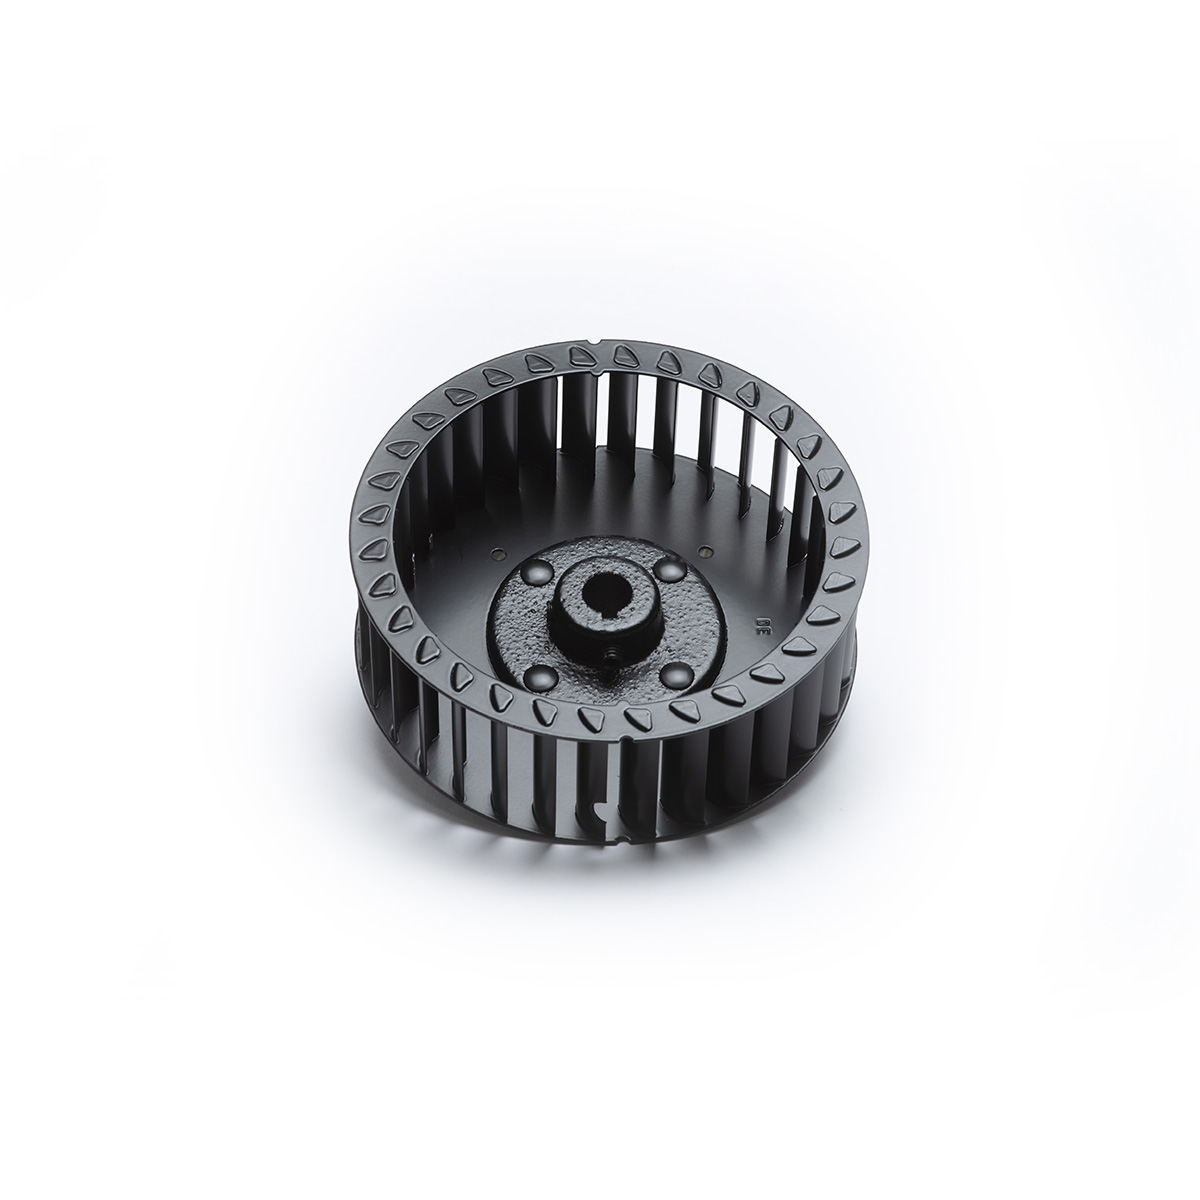 Blower Wheel 2436h Hp Vp2436 The Unico System